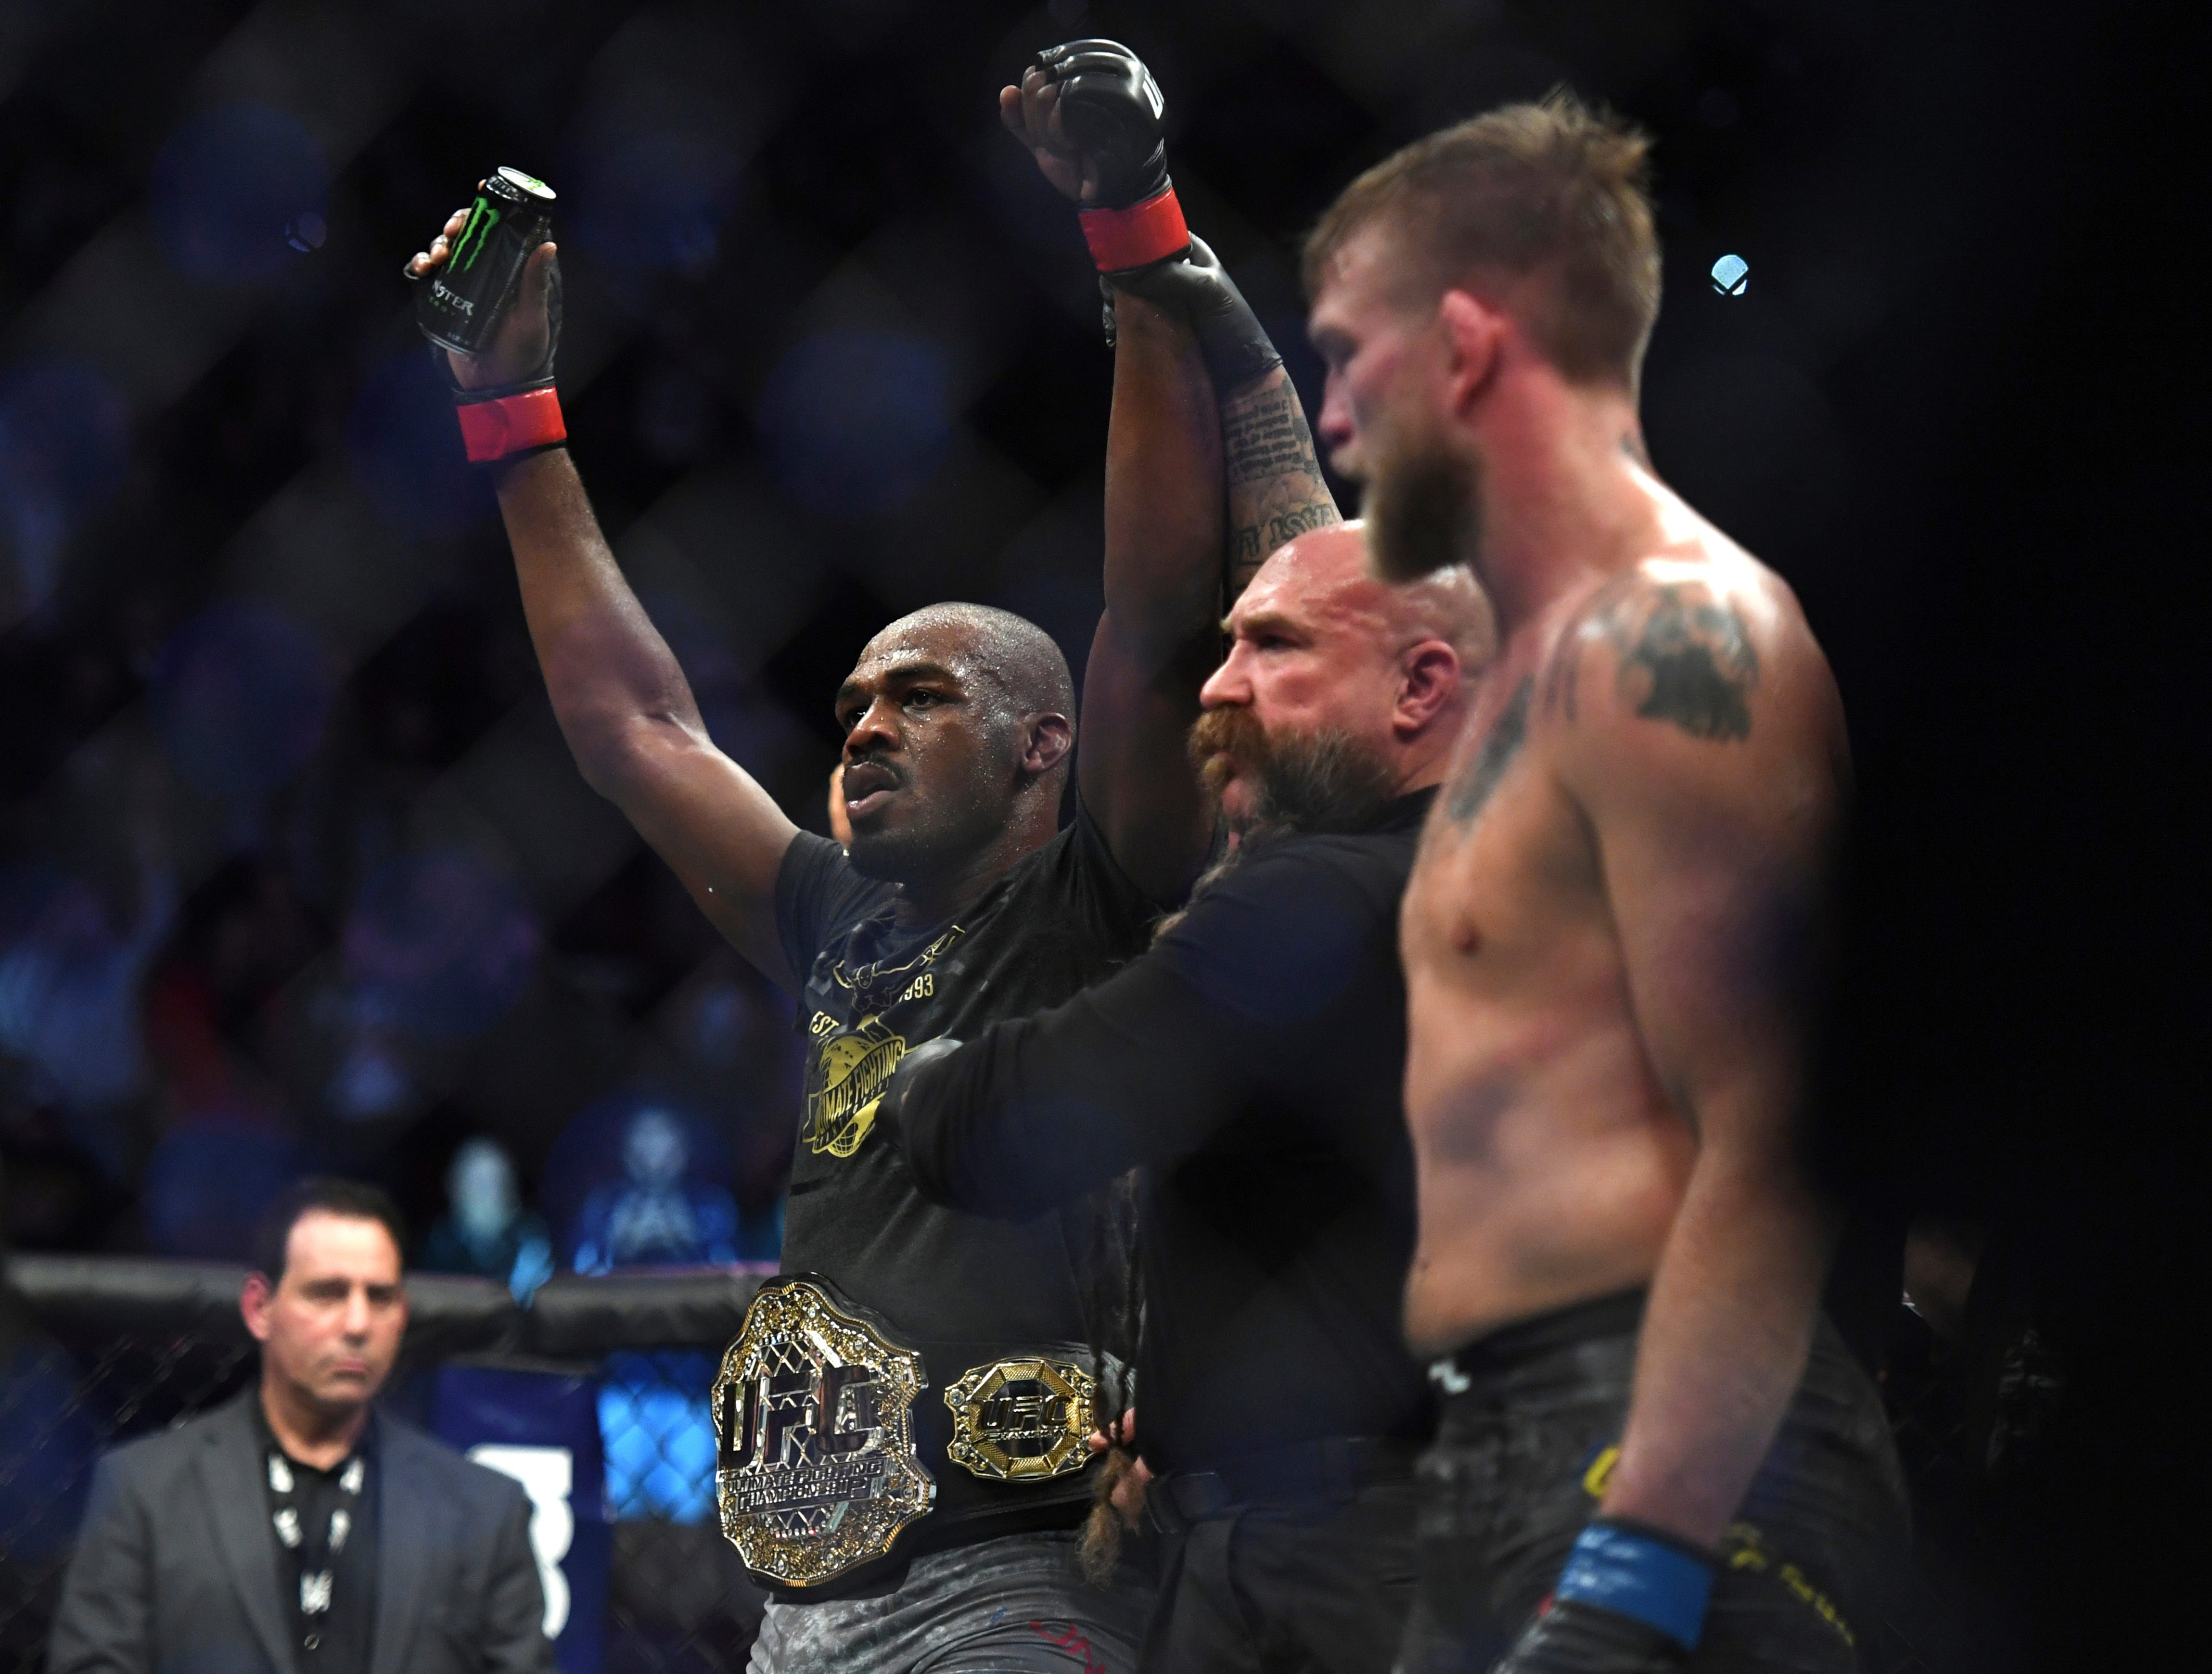 Jon Jones, left, celebrates as the referee raises his arms after Jones defeated Alexander Gustafsson in the UFC men's light heavyweight mixed martial arts bout at UFC 232, Saturday, Dec. 29, 2018, in Inglewood, Calif. (AP Photo/Kyusung Gong)